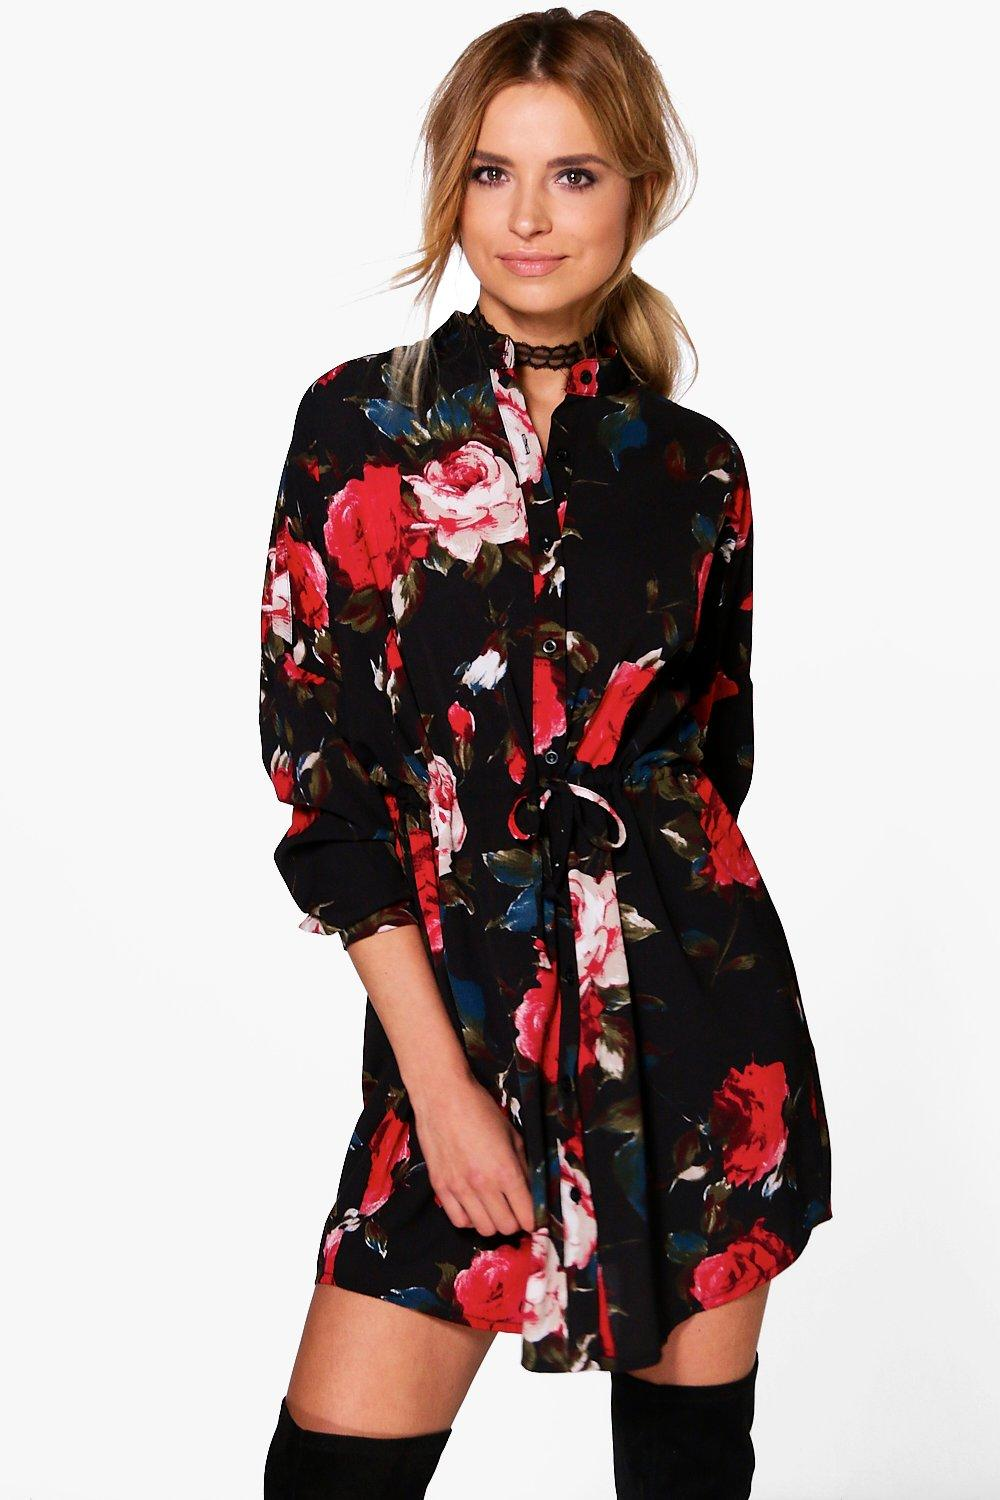 7c02f145f4 Womens Black Floral Print Tie Waist Shirt Dress. Hover to zoom